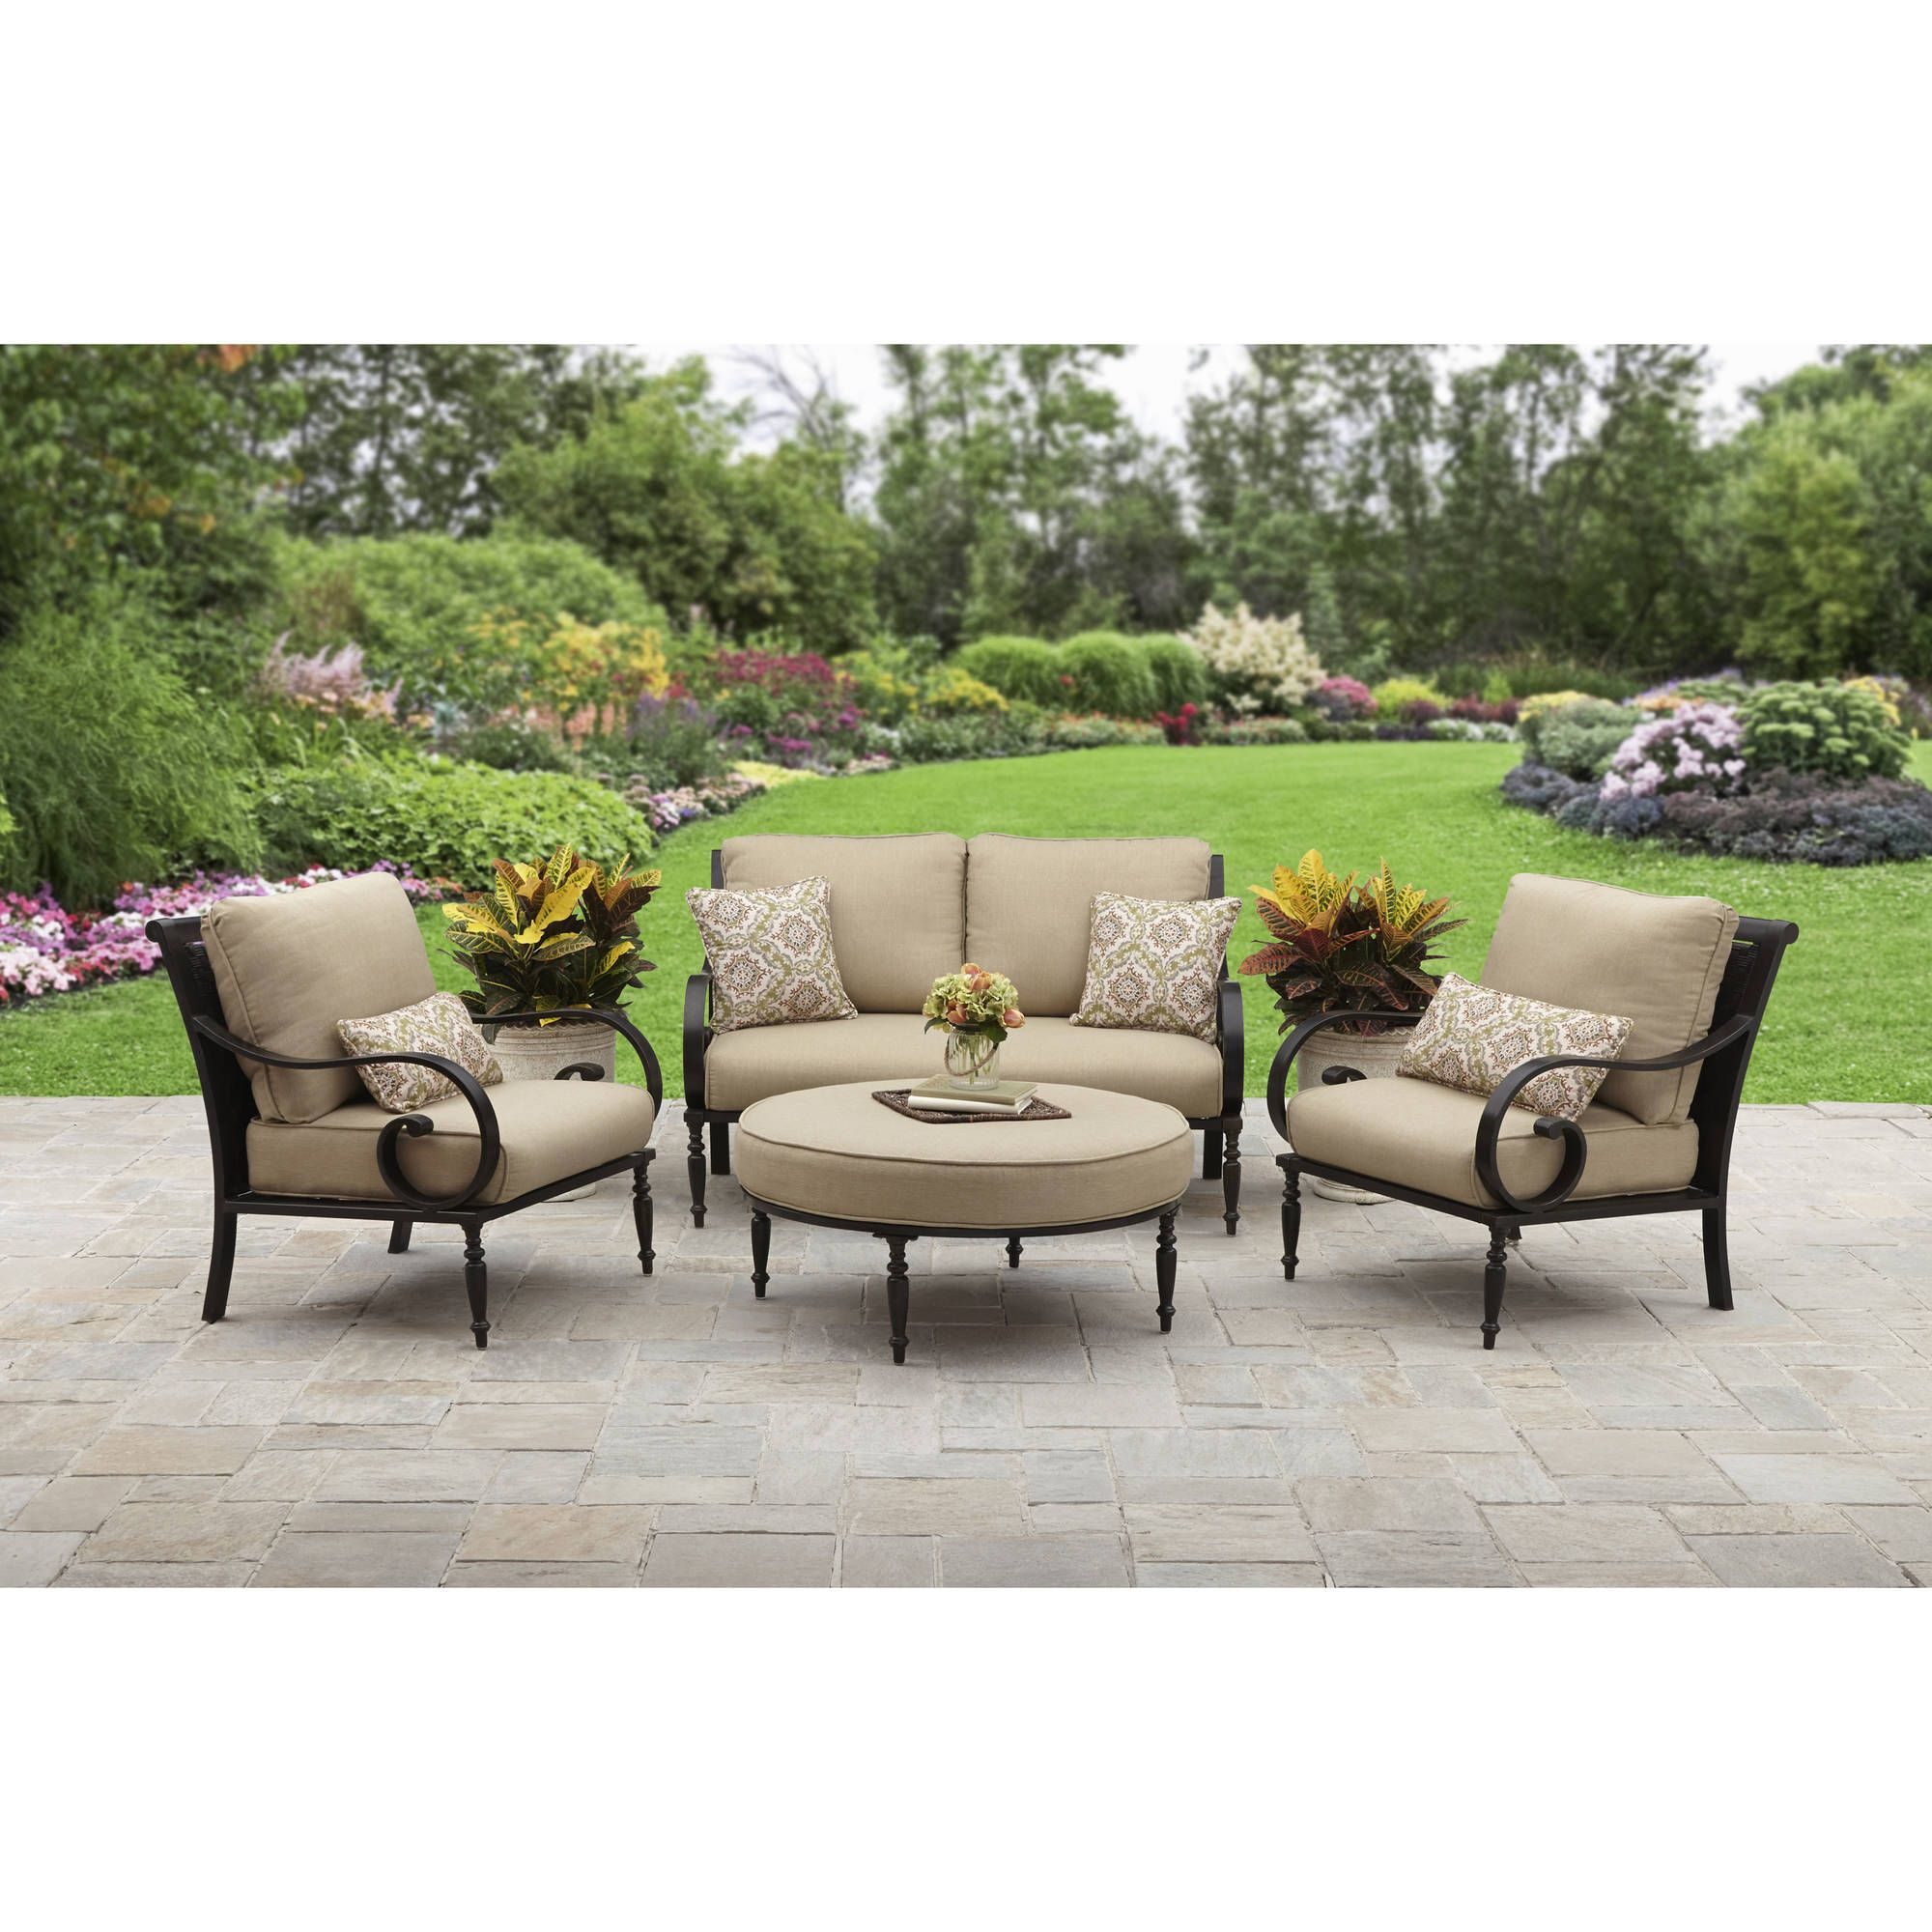 Relax And Entertain With The Englewood Heights Ii Aluminum Patio Set The Pretty Durable Cast Aluminu With Images Patio Decor Conversation Set Patio Cheap Patio Furniture